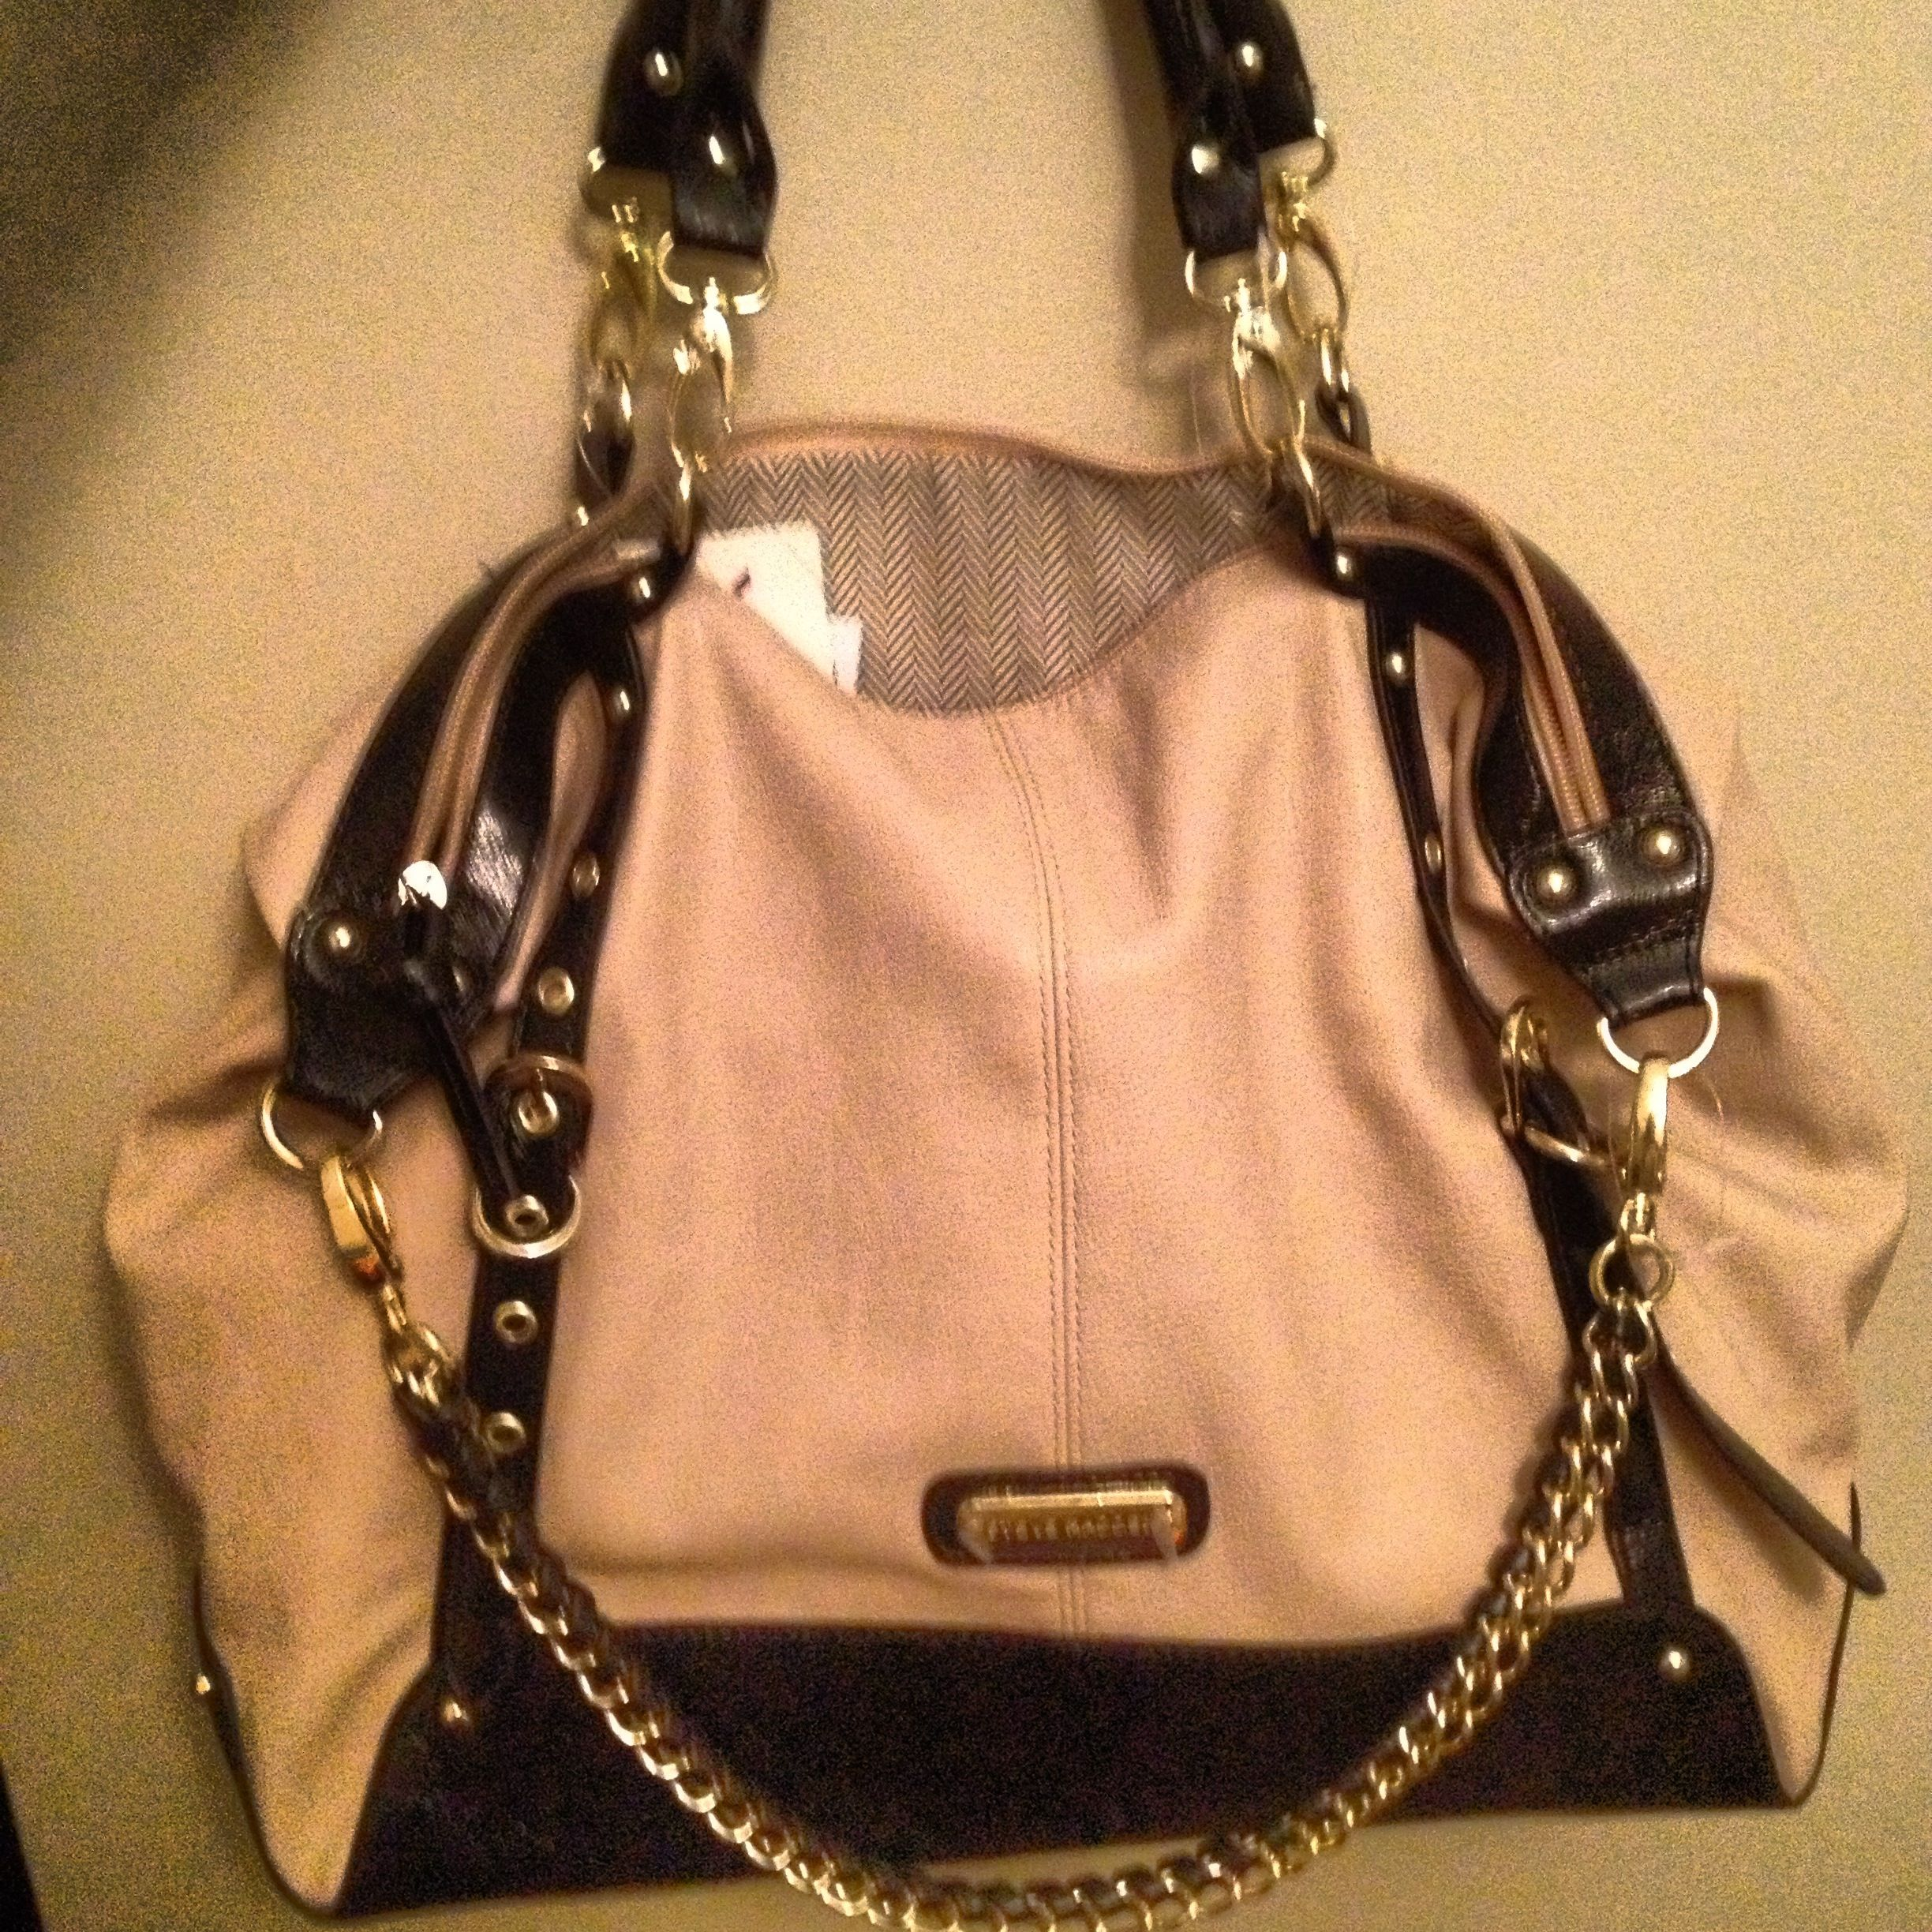 8503cab05f6d Steve Madden fall bag from TJ Maxx $39.99! | My Style & Fashion | Tj ...